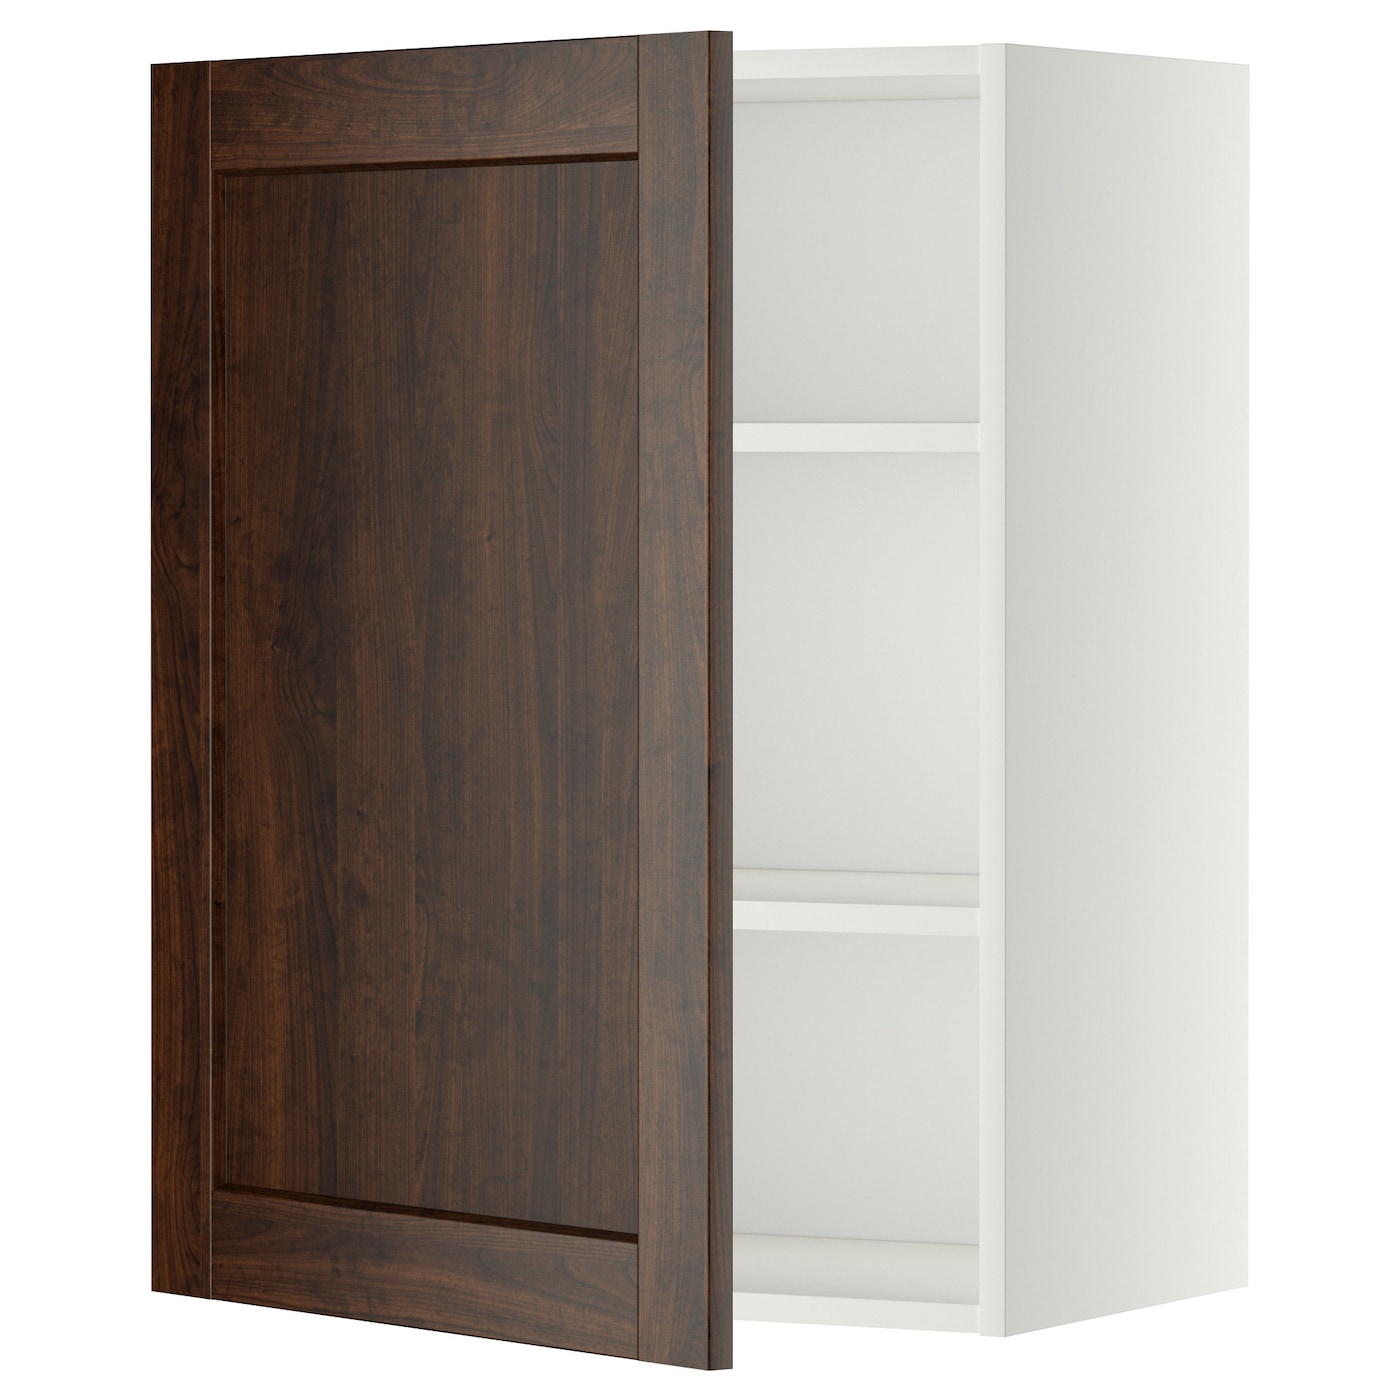 ikea vattern bathroom cabinet metod wall cabinet with shelves white edserum brown 60x80 17755